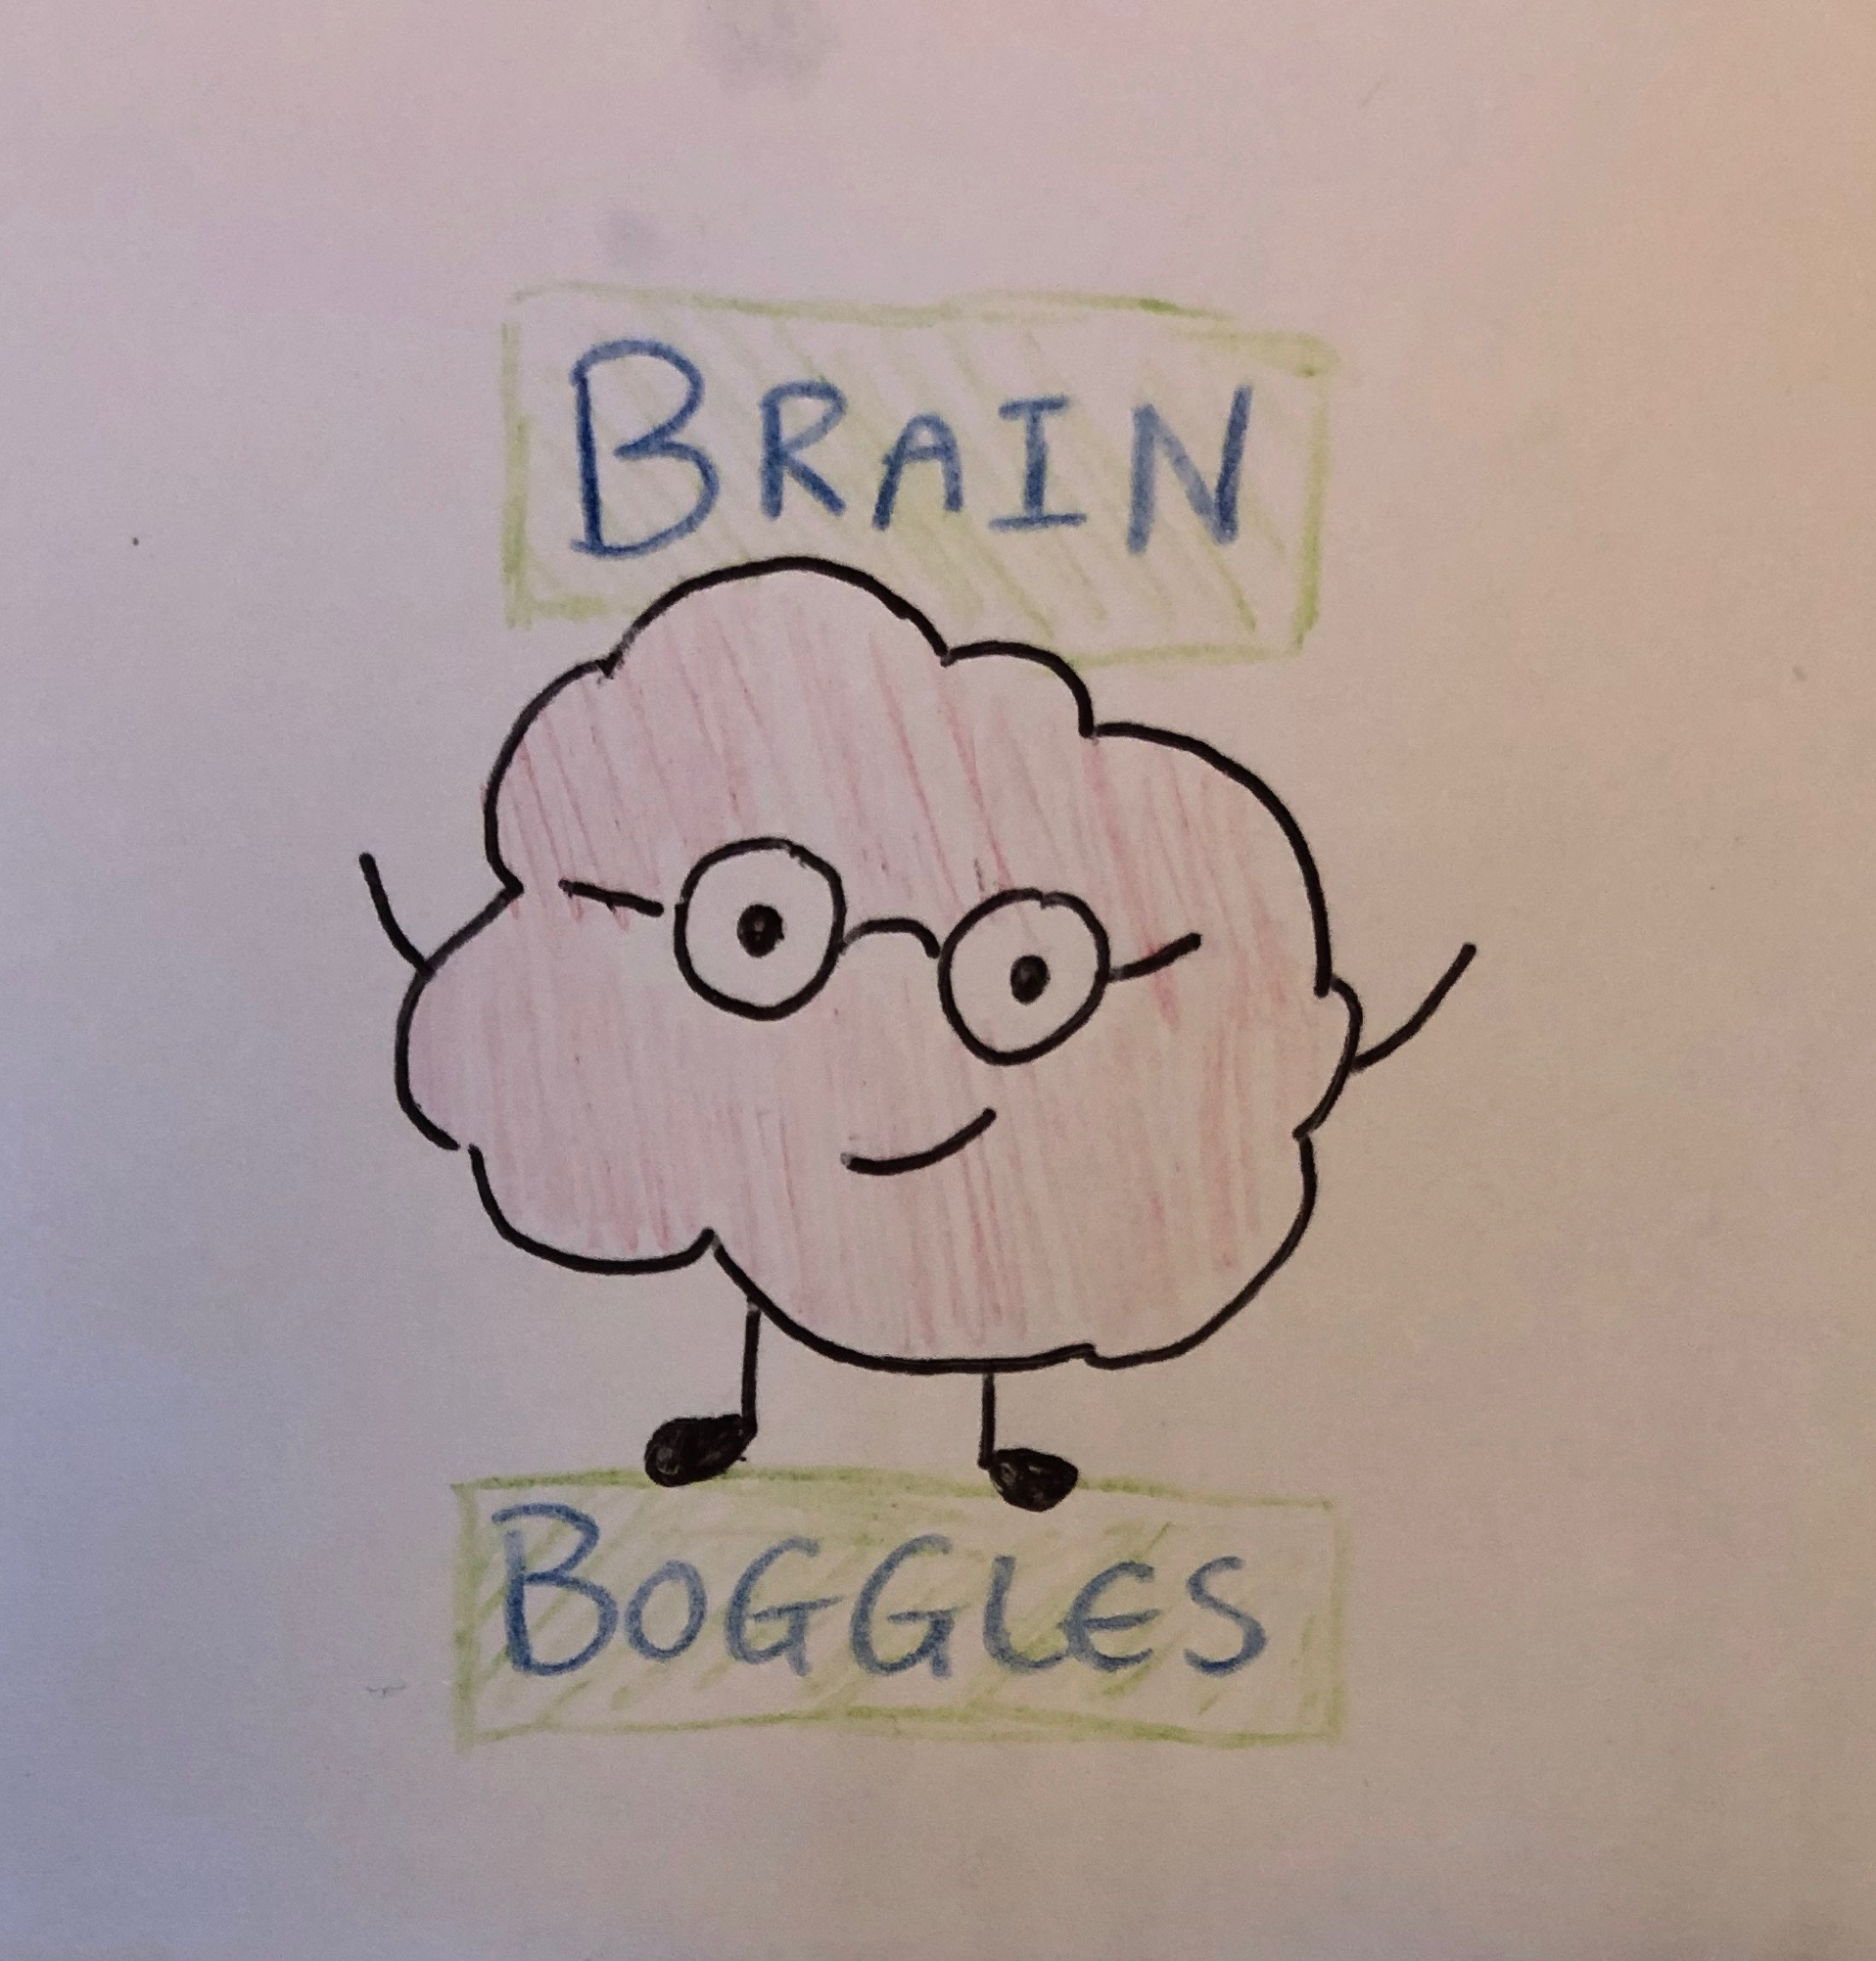 Welcome to the Banter Brain Boggles. - Here, the Body Banter team provides you with reviews and thoughts on books, articles, blogs, podcasts, videos and other forms of media that touch on the general topic of how we relate to our bodies. Stay tuned as we boggle our brains! :)